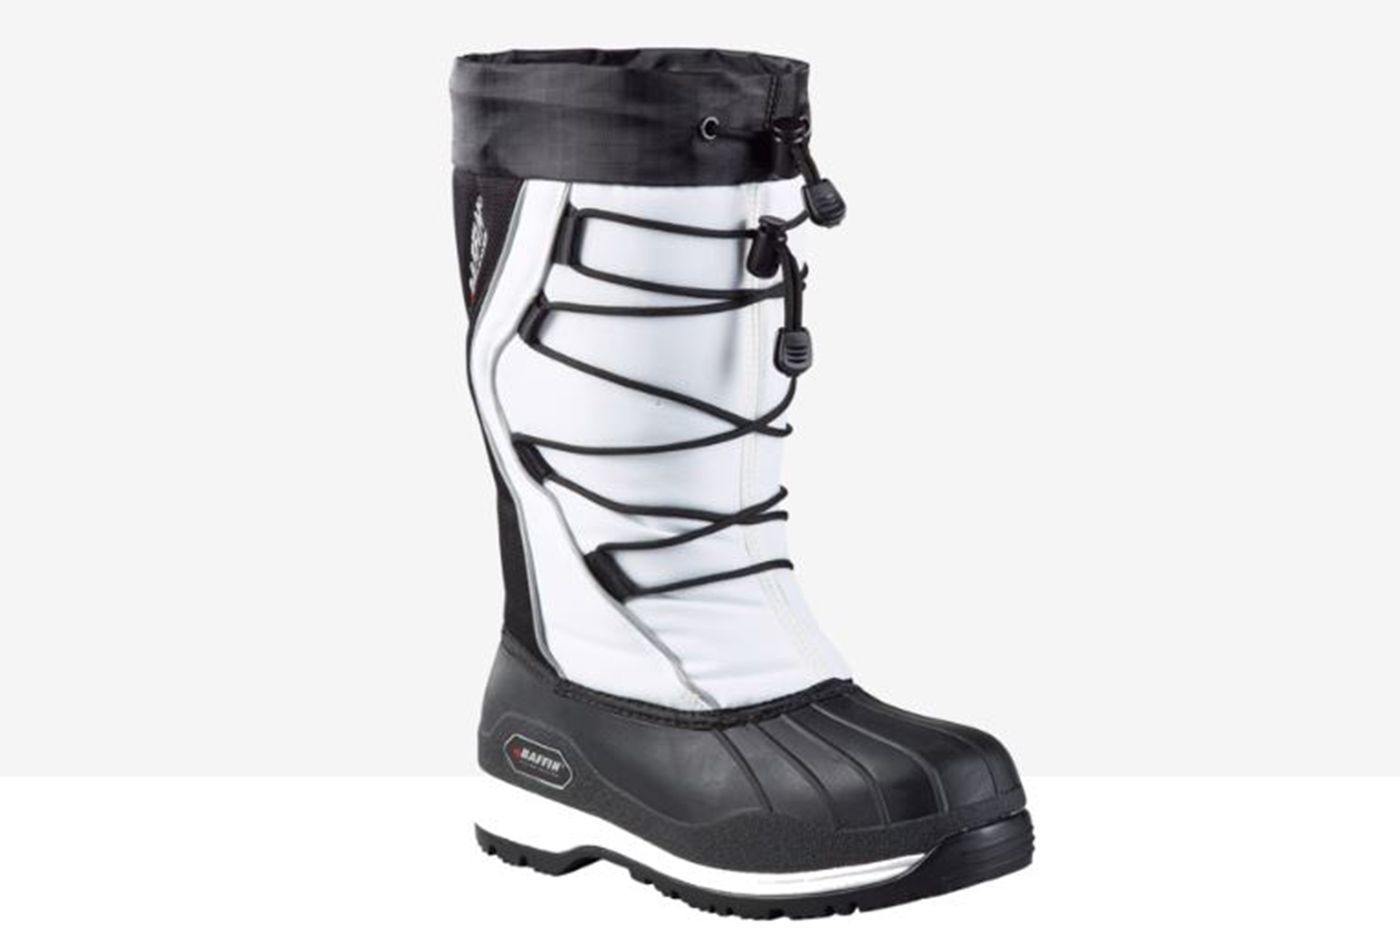 Icefield boot by Baffin